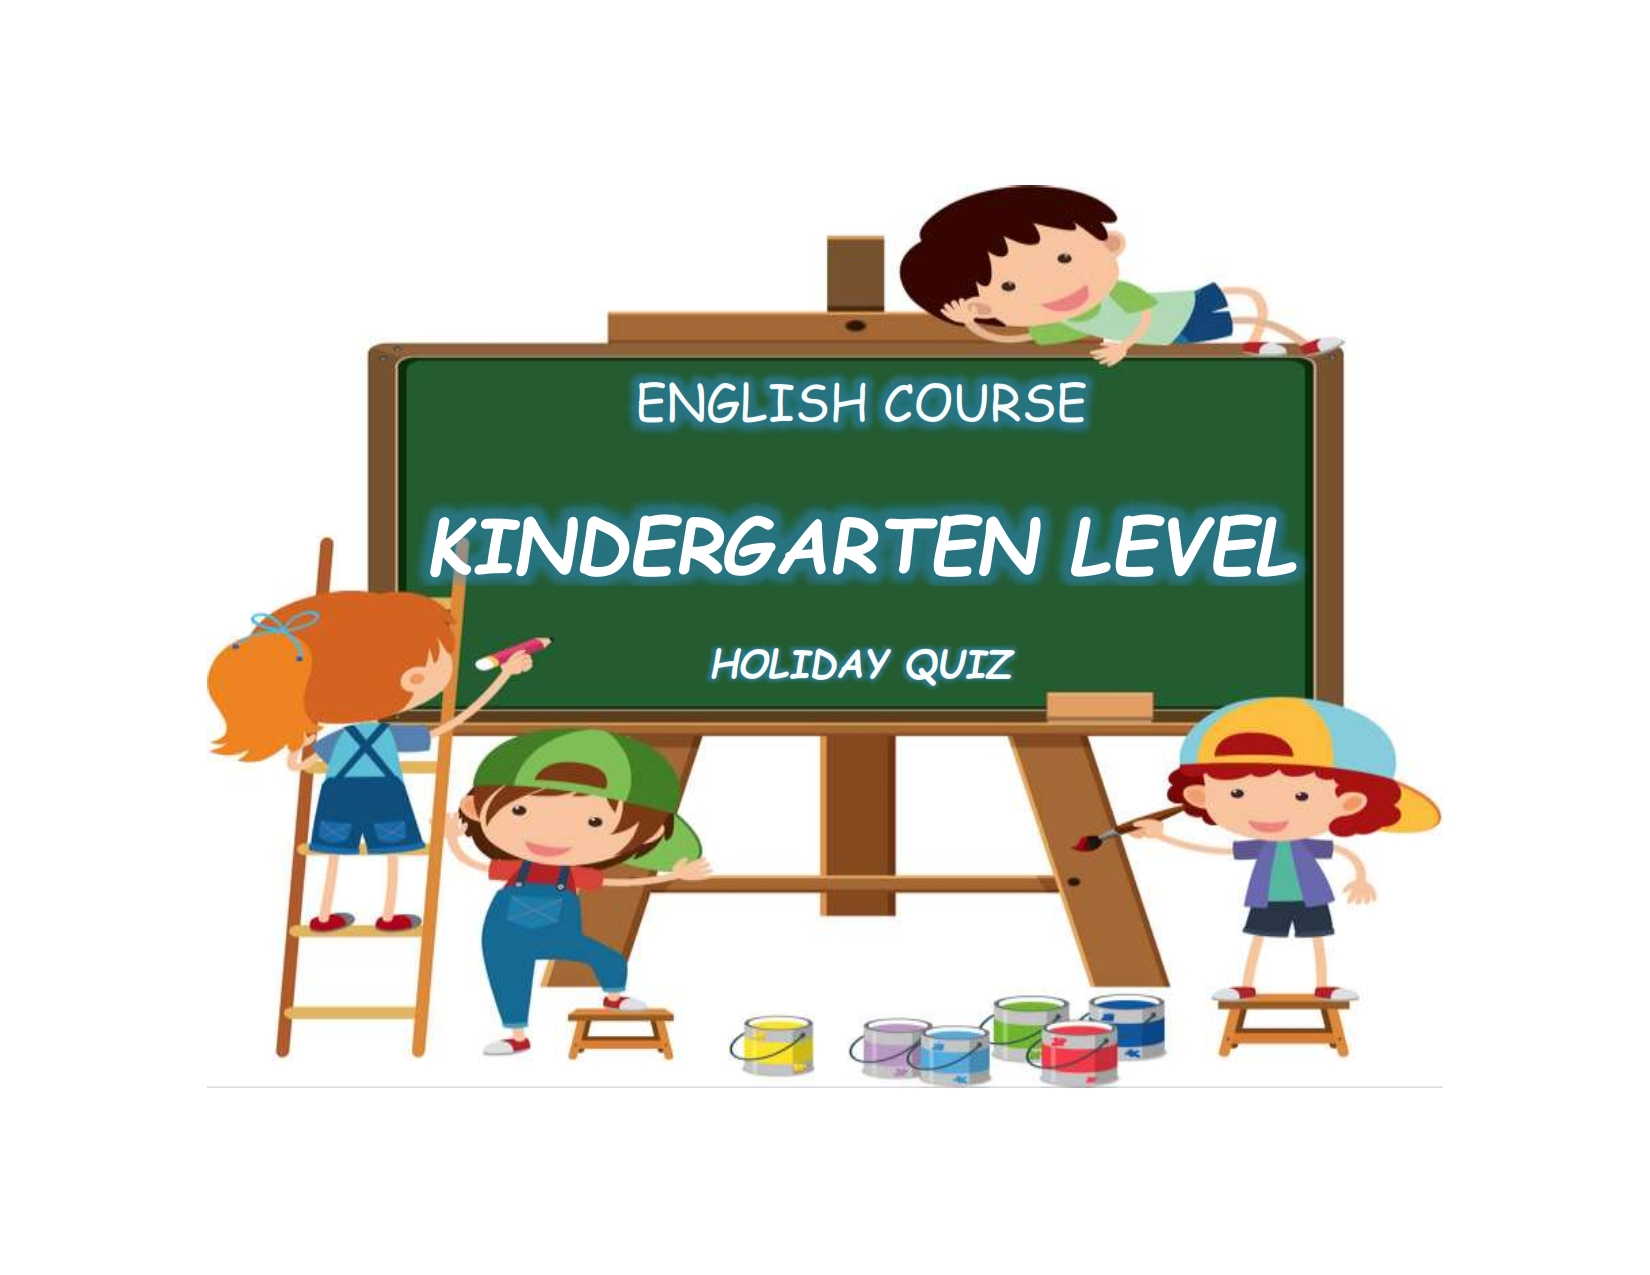 English Course Kindergarten Level Games